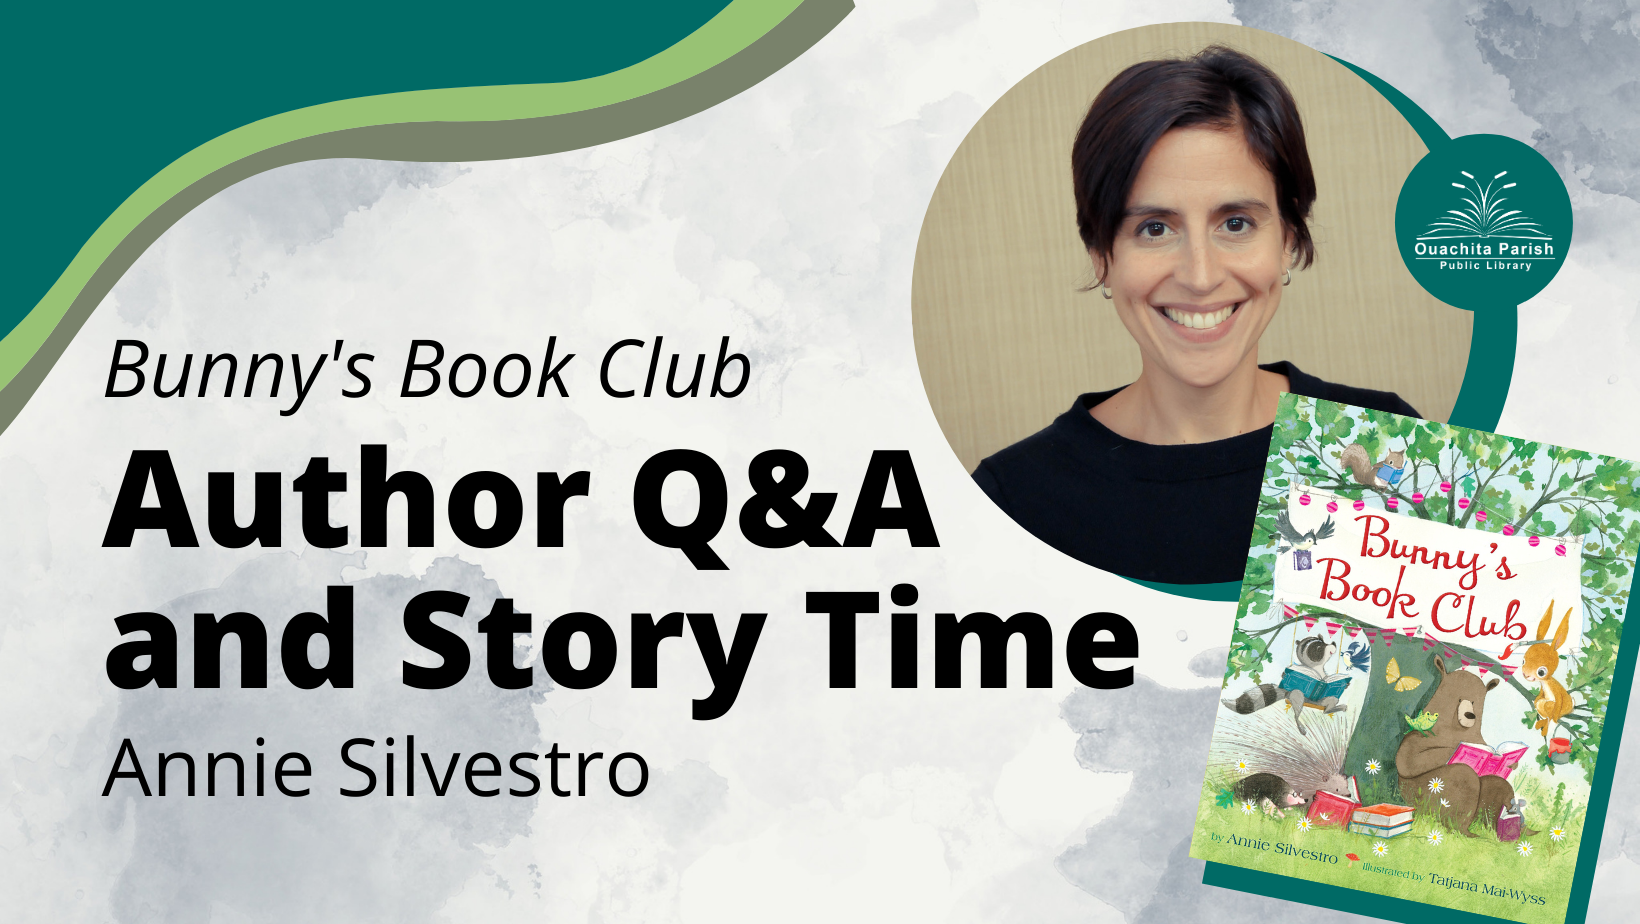 Author Q&A and Story Time